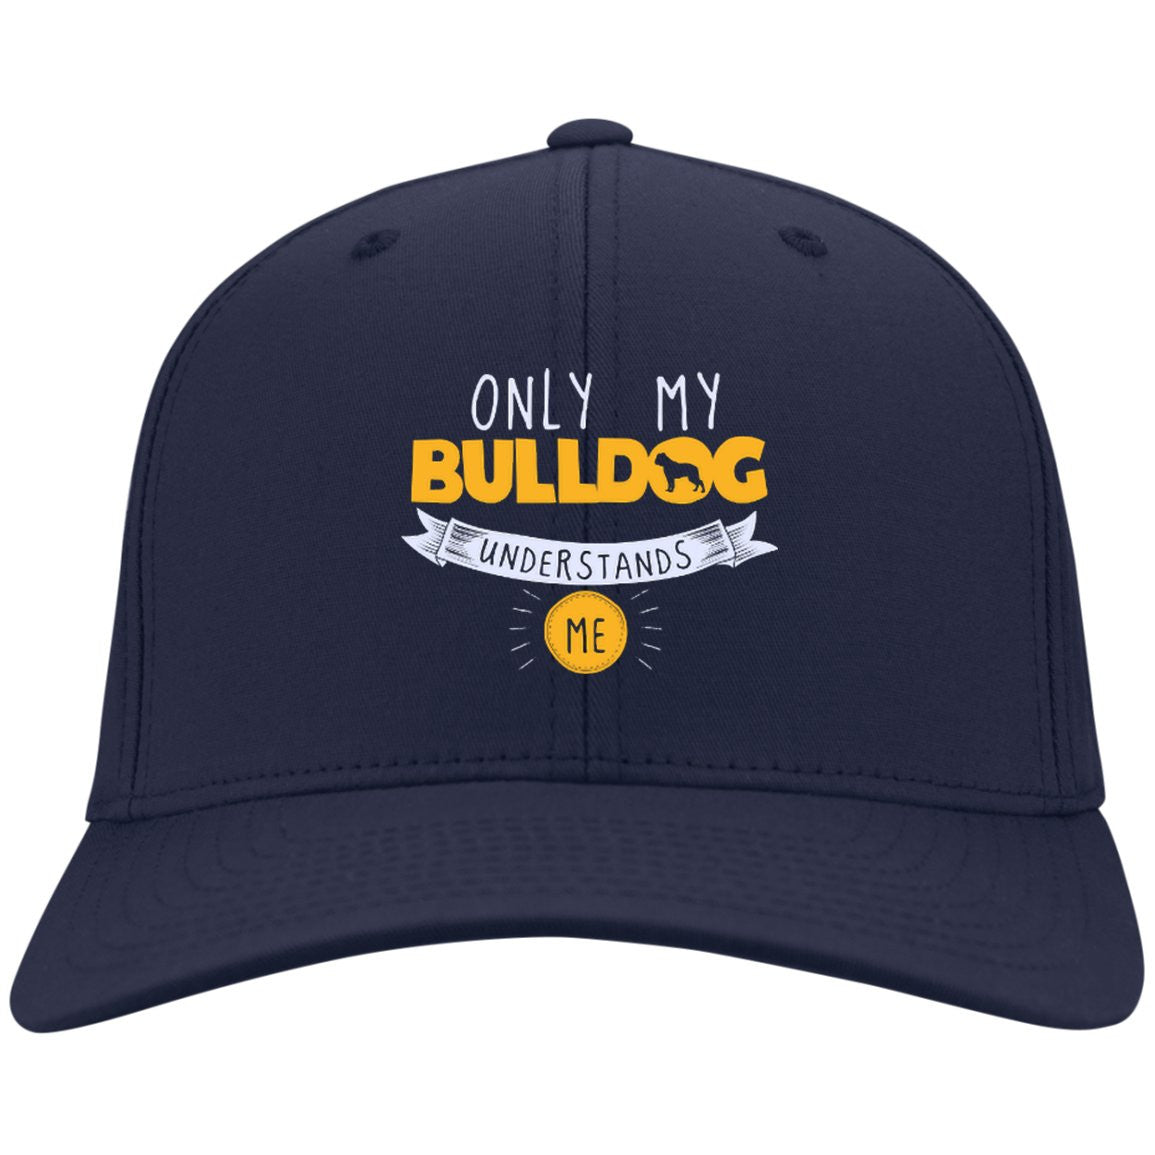 Bulldog - Only My Bulldog Understands Me - Dry Zone Nylon Cap (Embroidered)